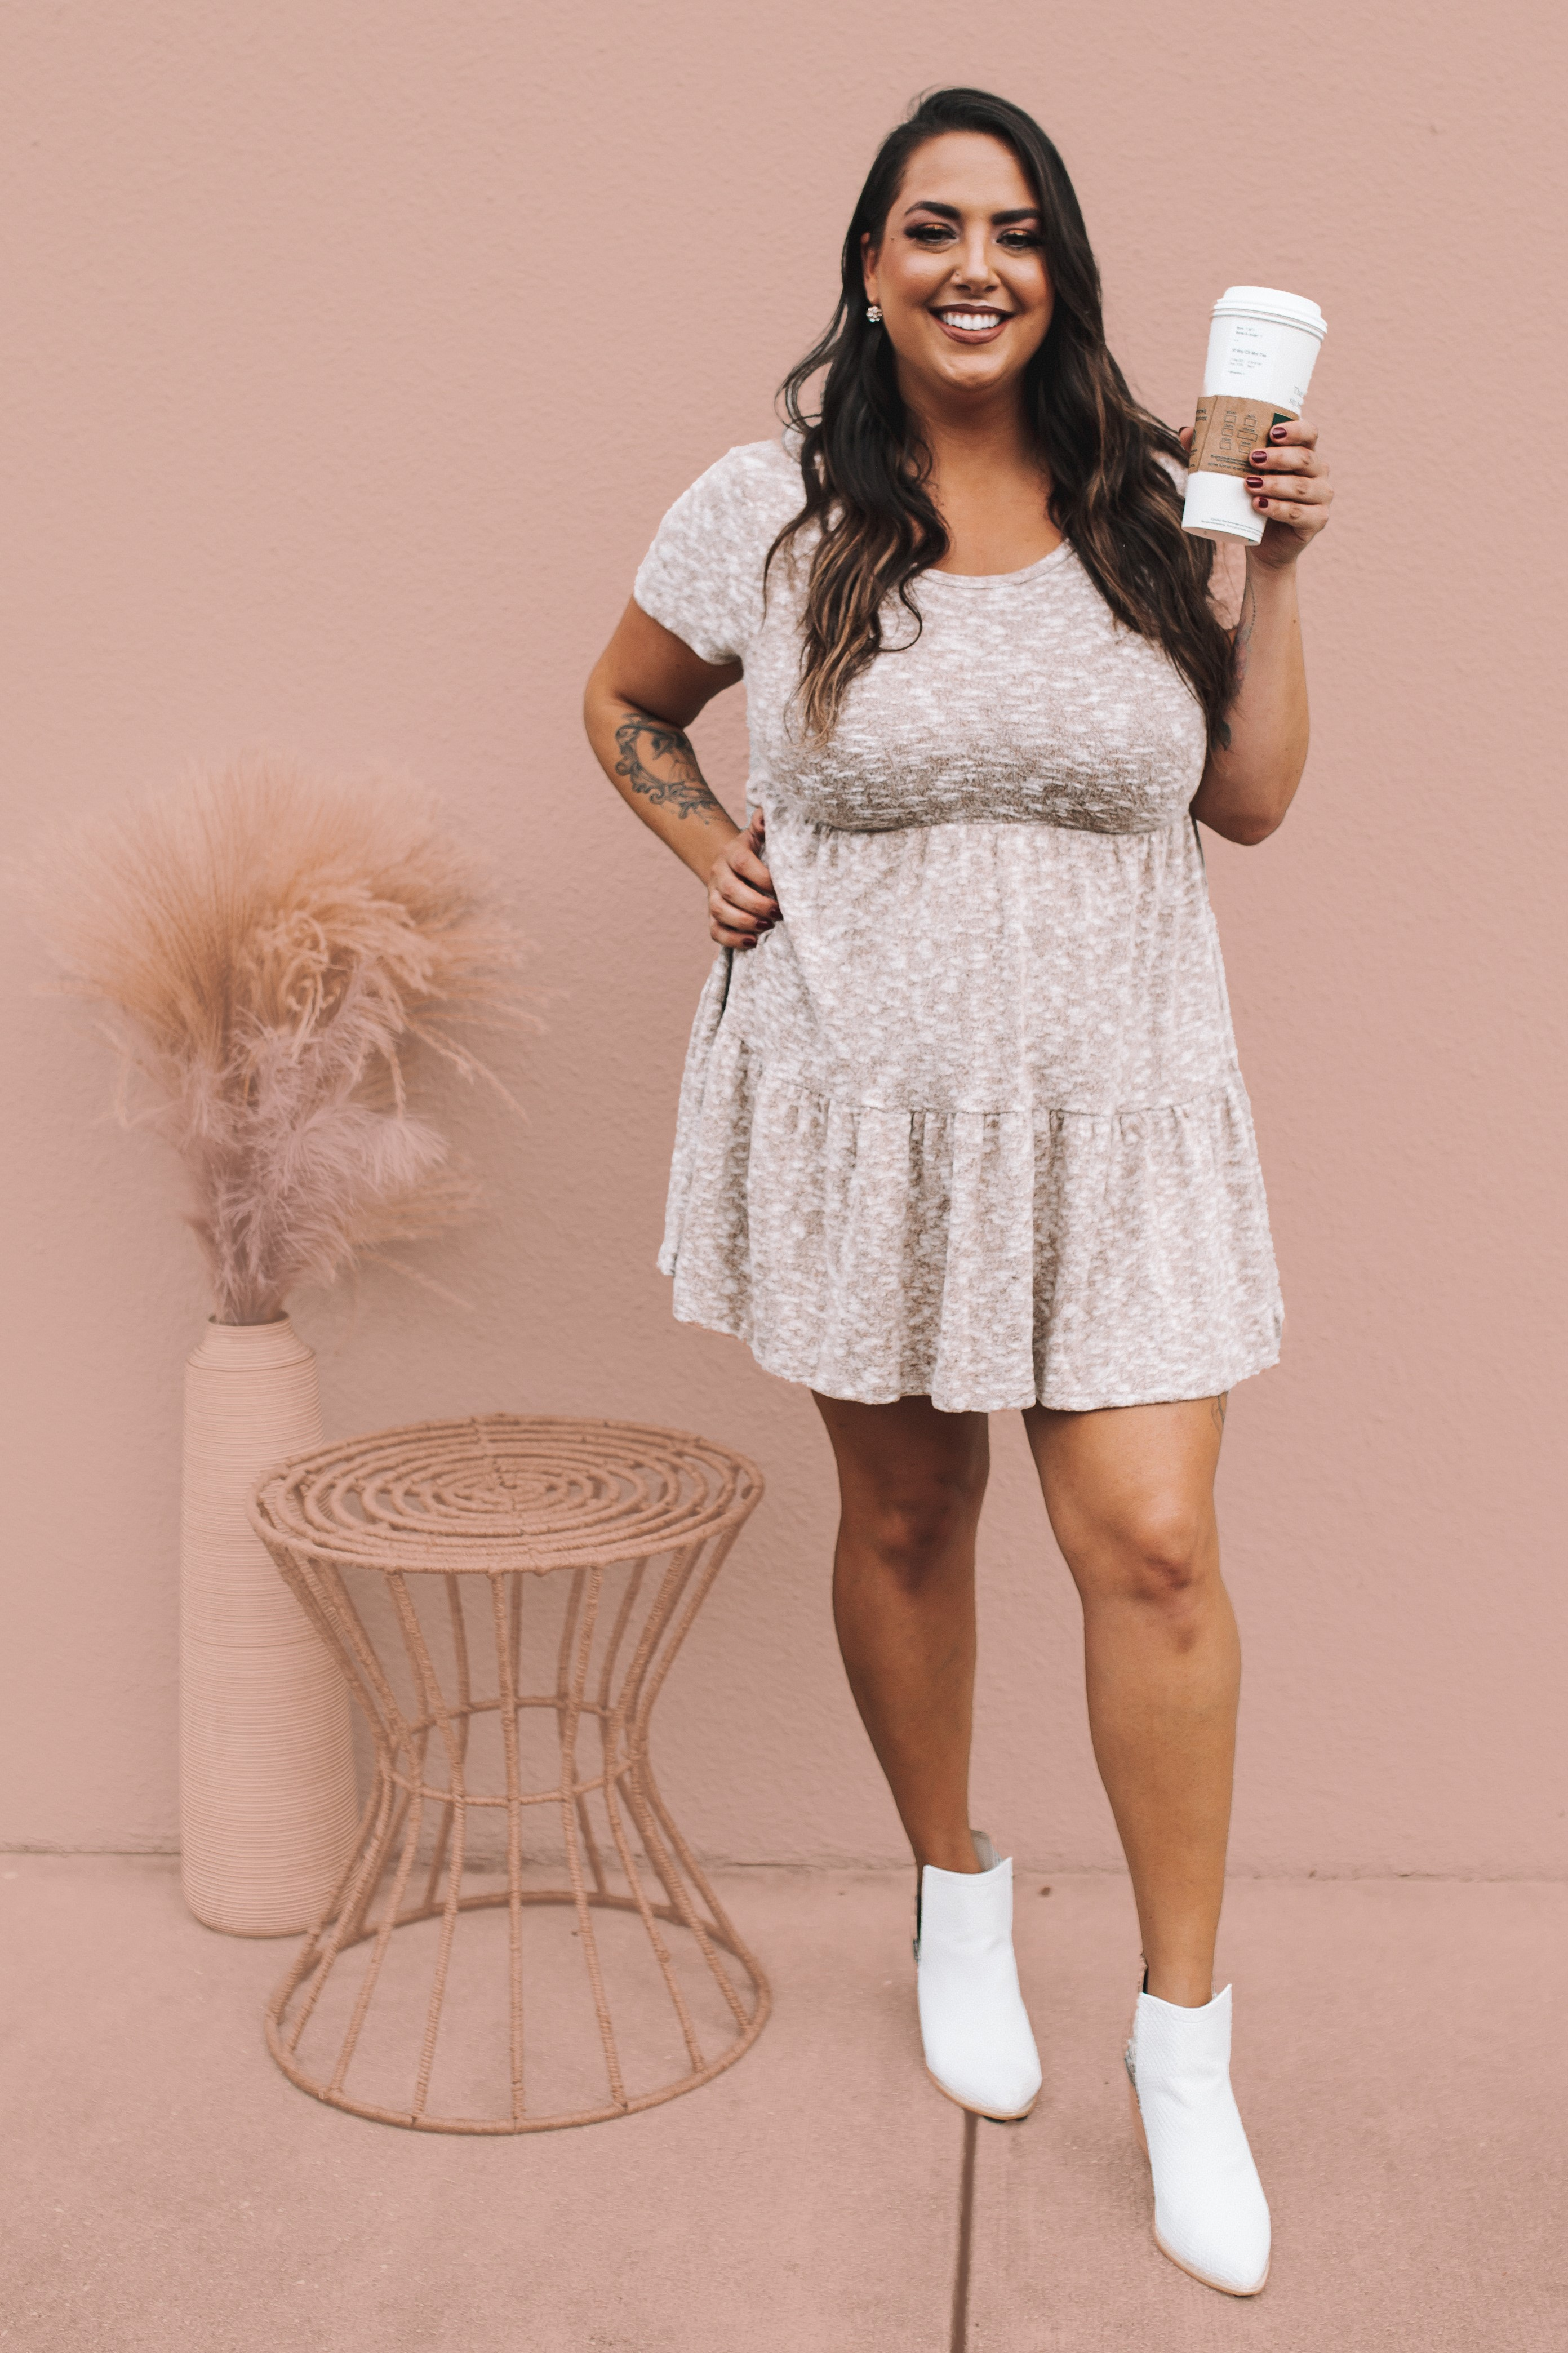 MAVERICK EXCLUSIVE! BROWN AND WHITE HEATHERED, SHORT SLEEVE BABYDOLL DRESS. SUPER SOFT AND STRETCHY. LIGHTWEIGHT AND FLOWY KNIT. 52% COTTON,  44% POLYESTER, 4% SPANDEX.